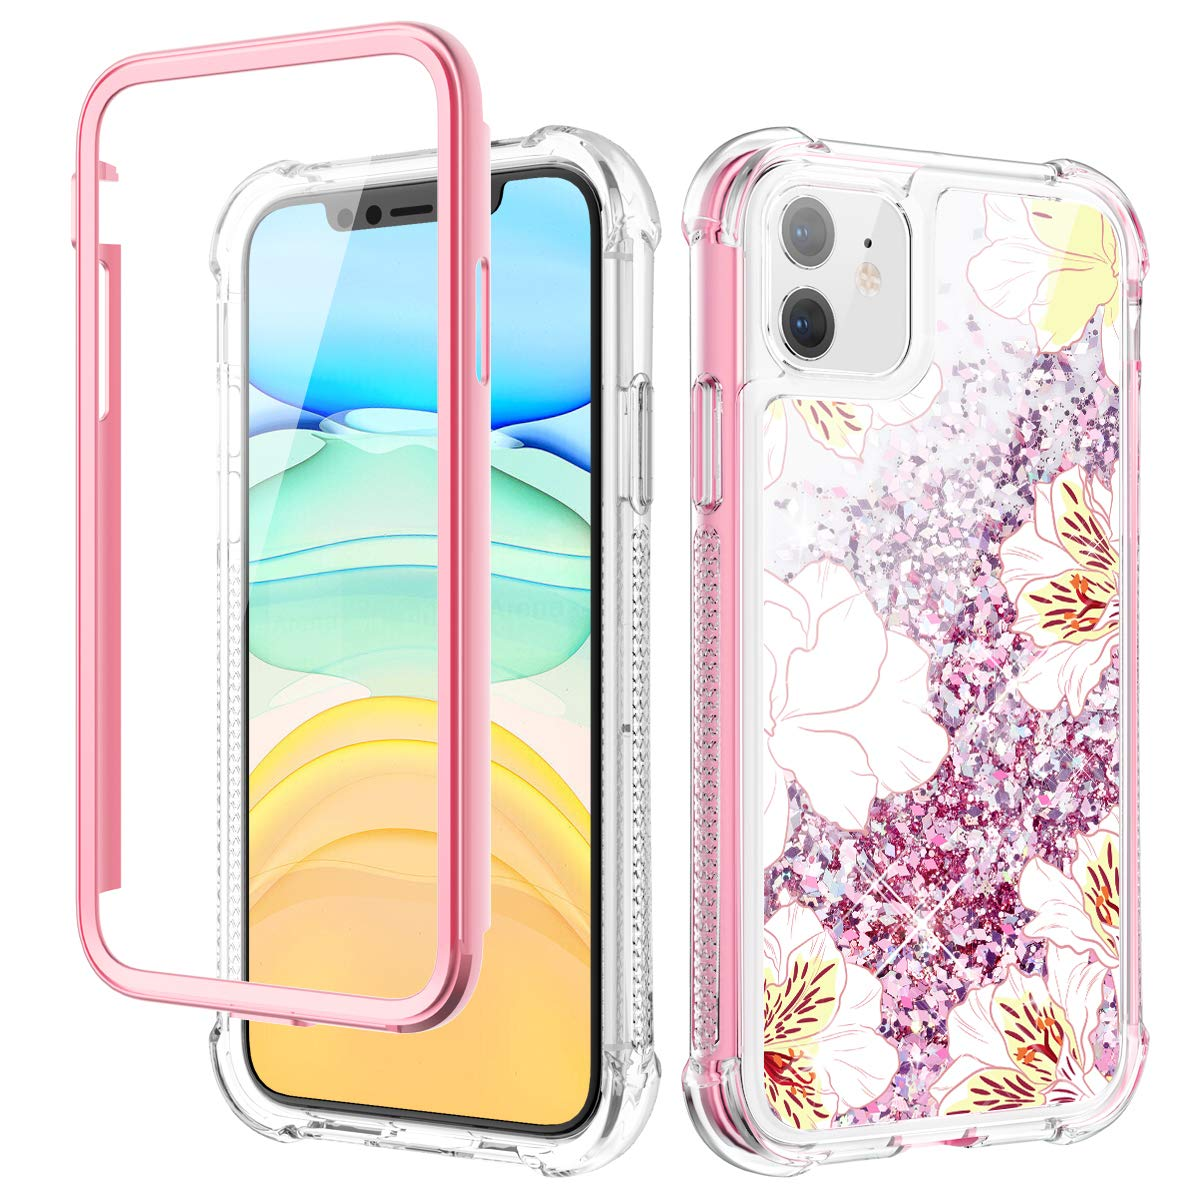 Caka Case for iPhone 11 Case Glitter Liquid Flower Full Body Protection with Built in Screen Protector for Girls Women Girly Floral Bling Protective Case for iPhone 11 6.1 (Yellow White)